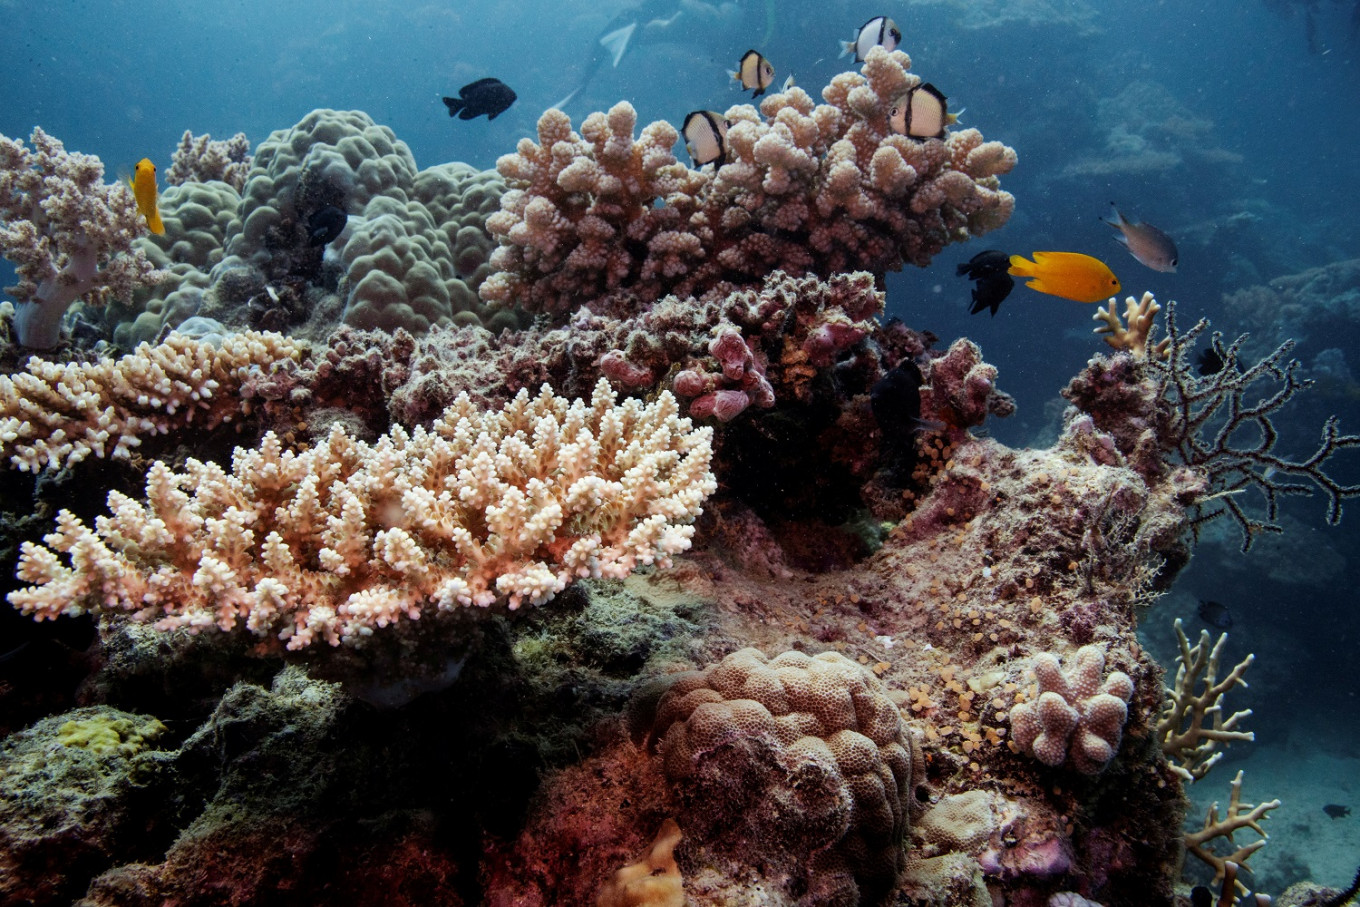 Australia's Great Barrier Reef shows signs of new coral bleaching